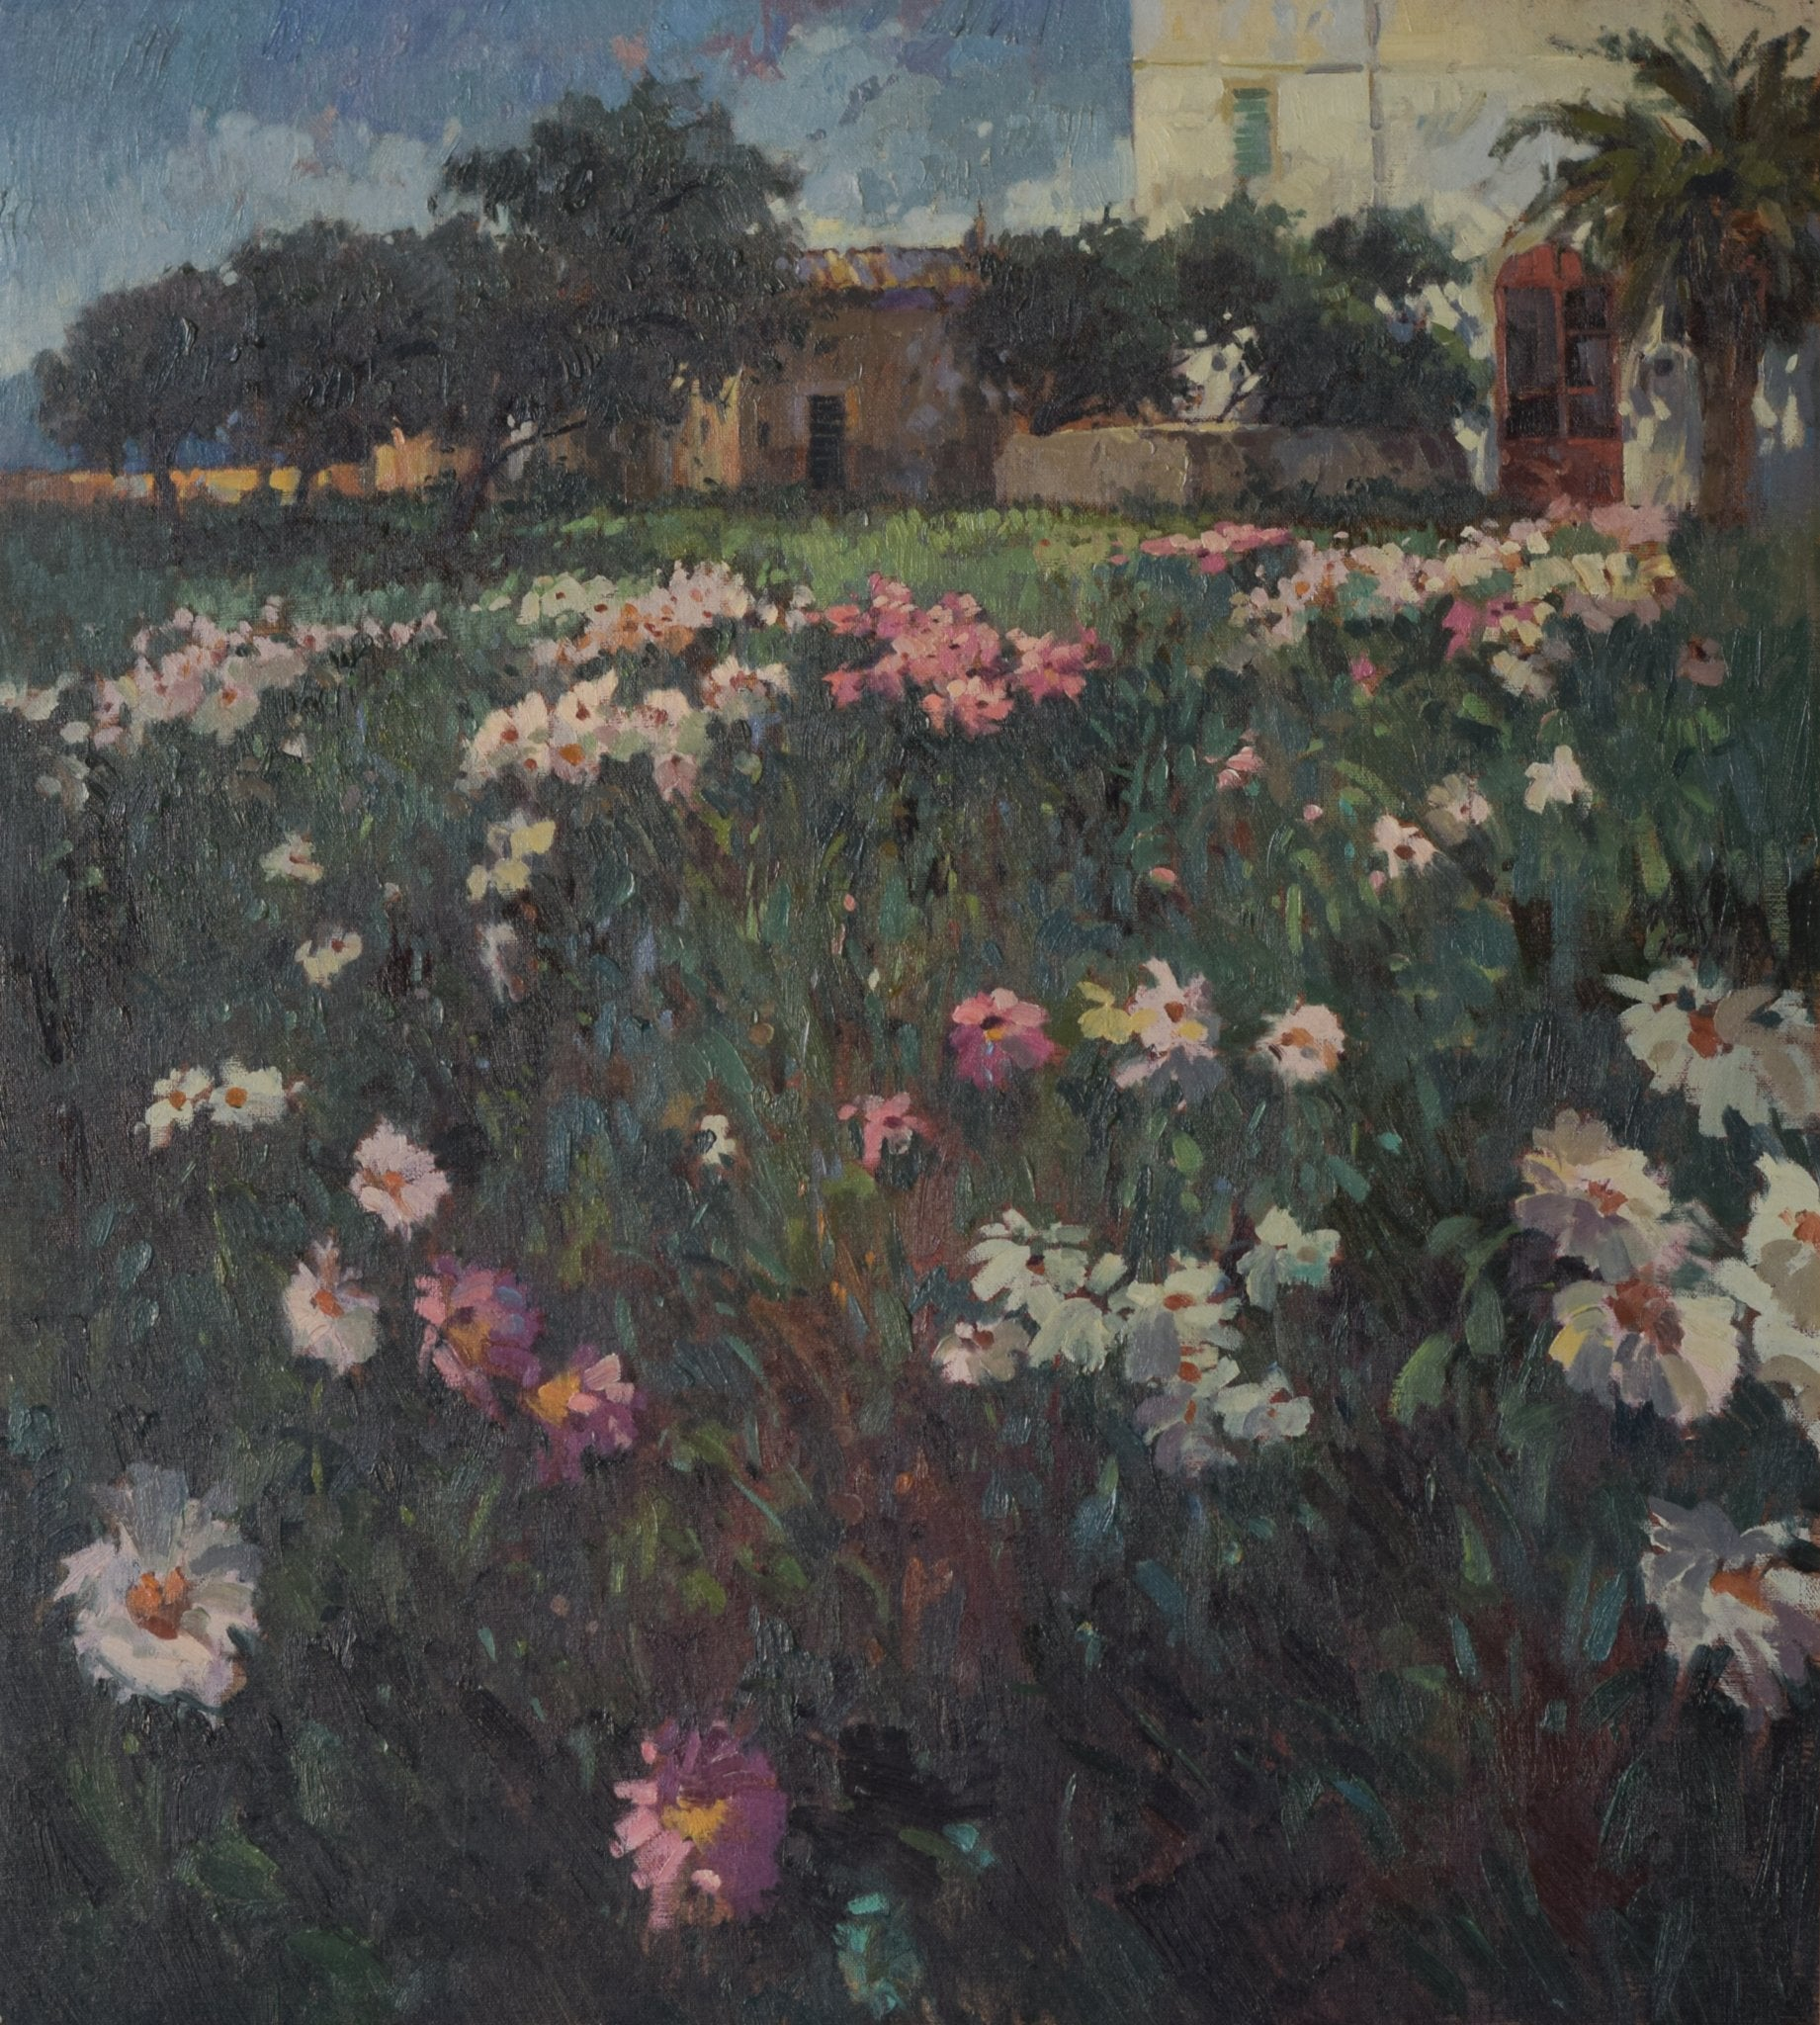 Large Landscape scene with Floral meadow